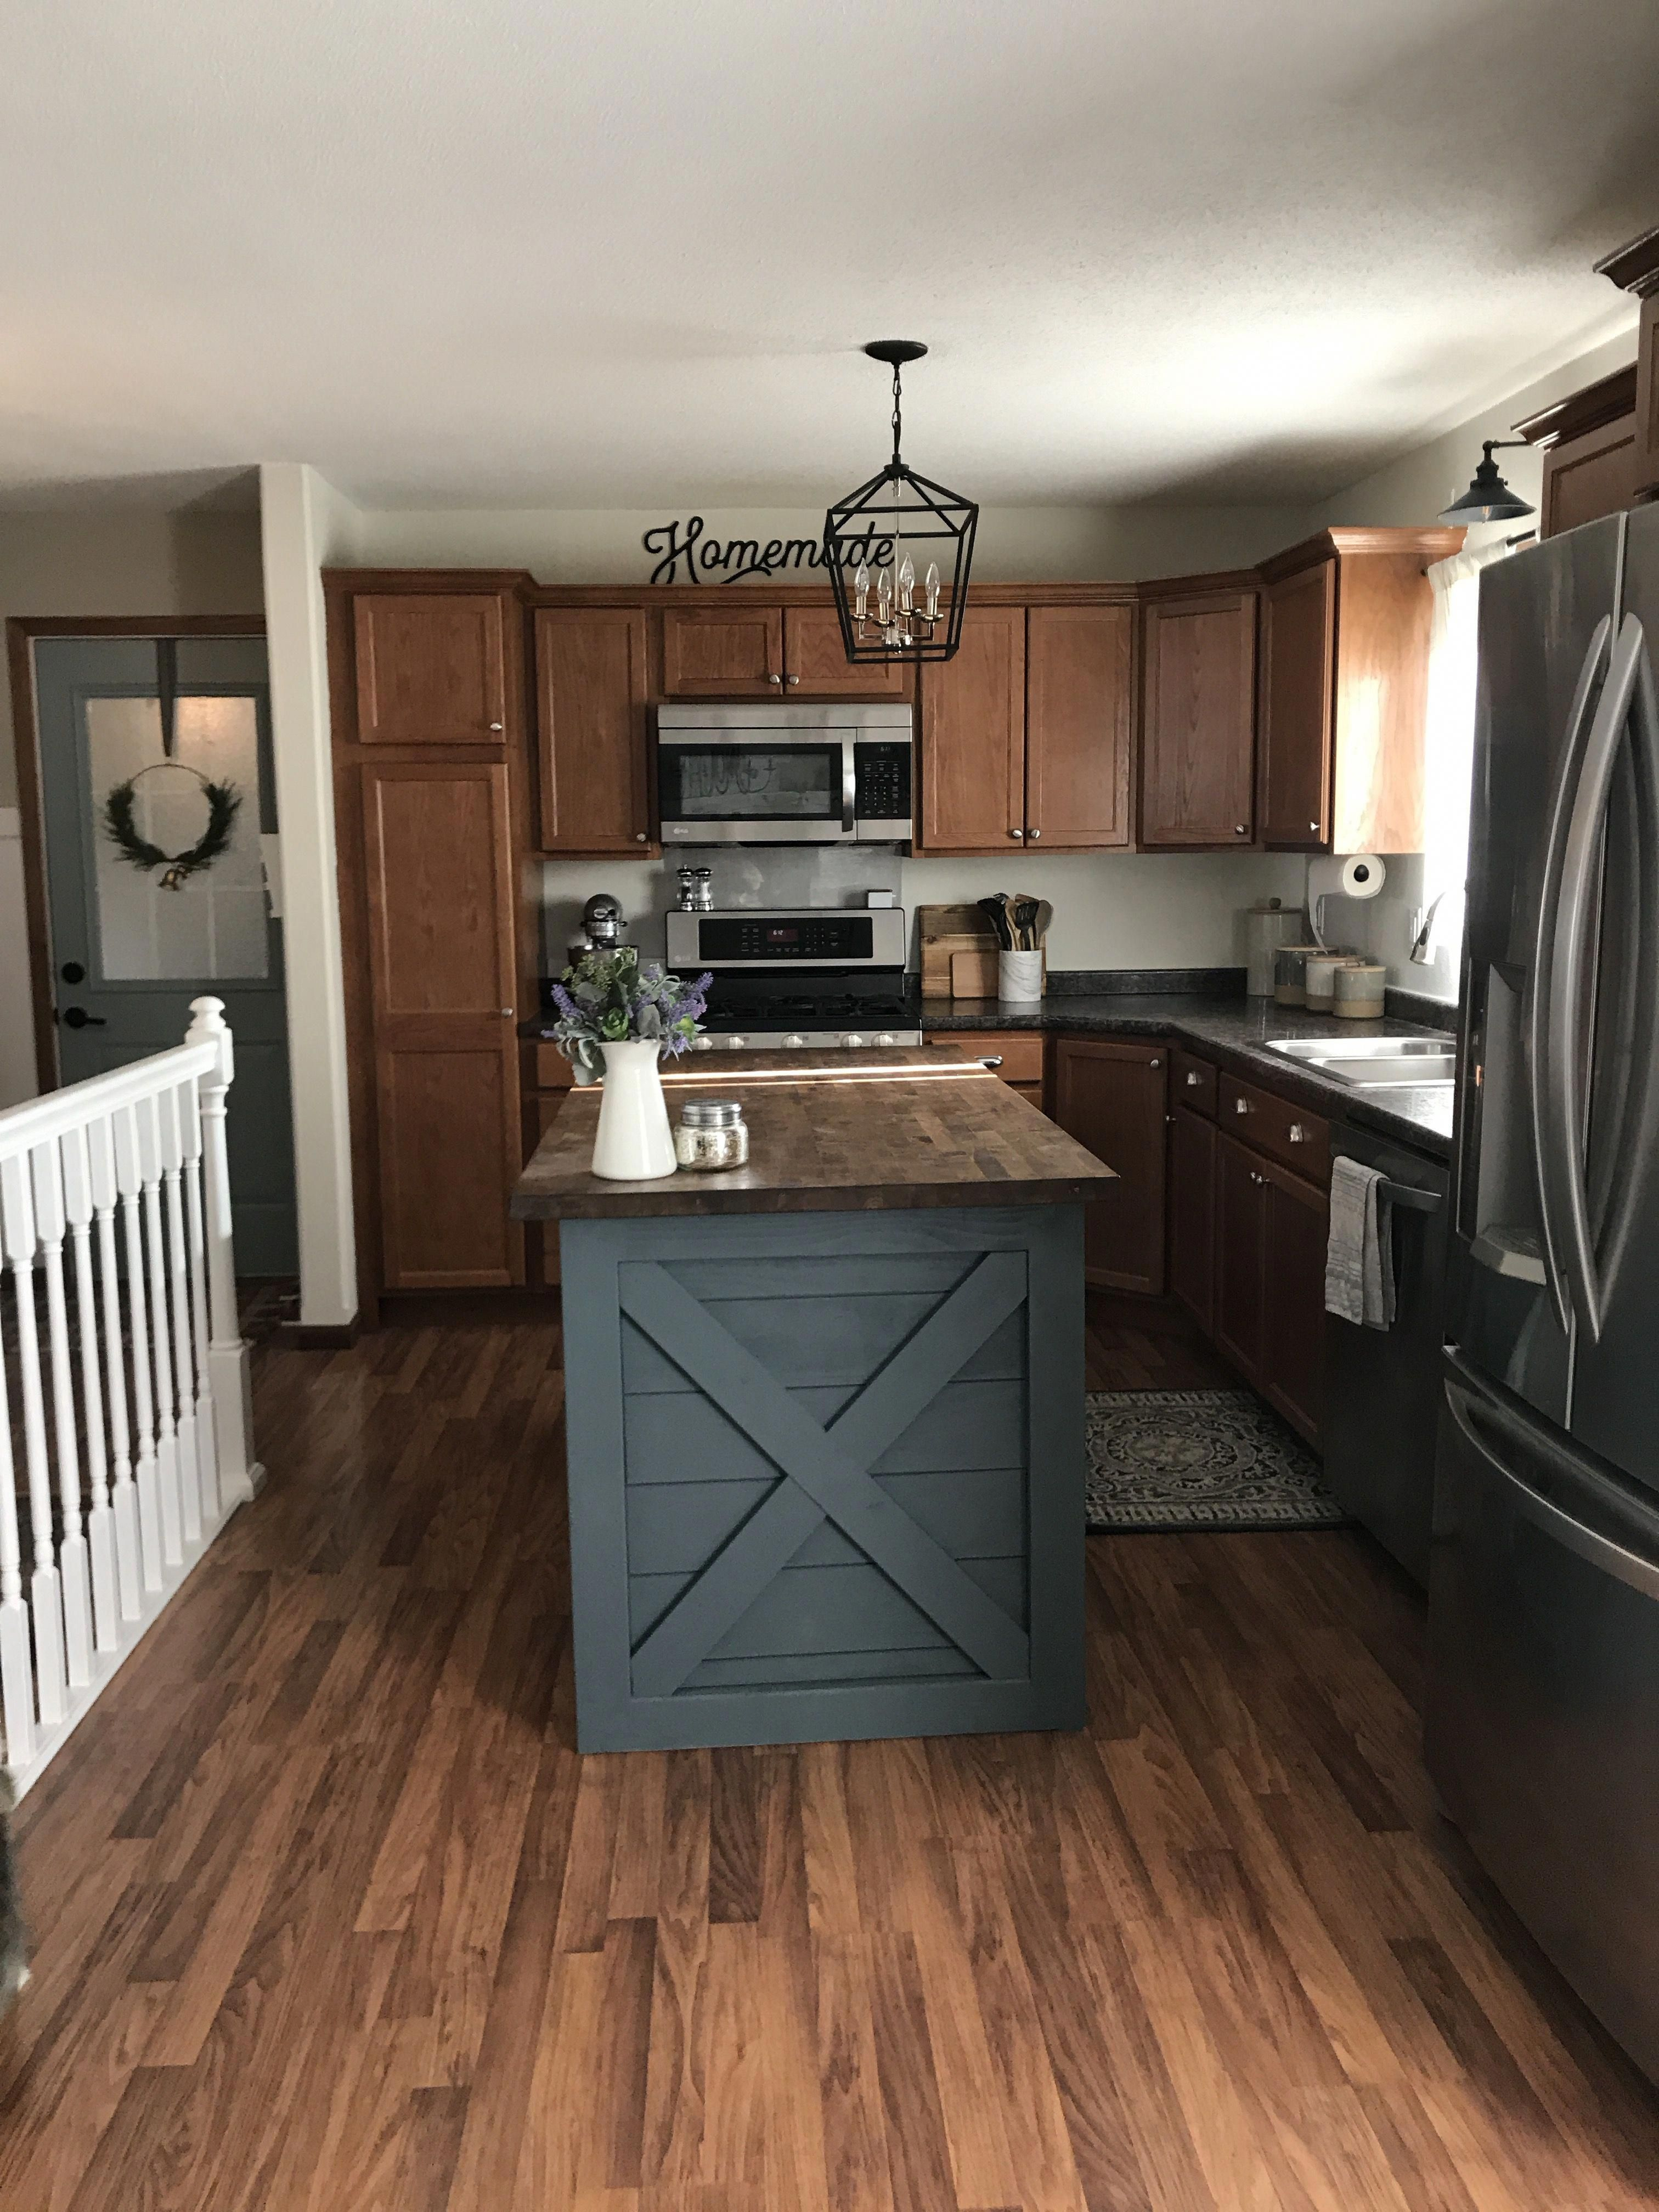 Awesome Design Ideas For Kitchen Cabinets Farmhouse